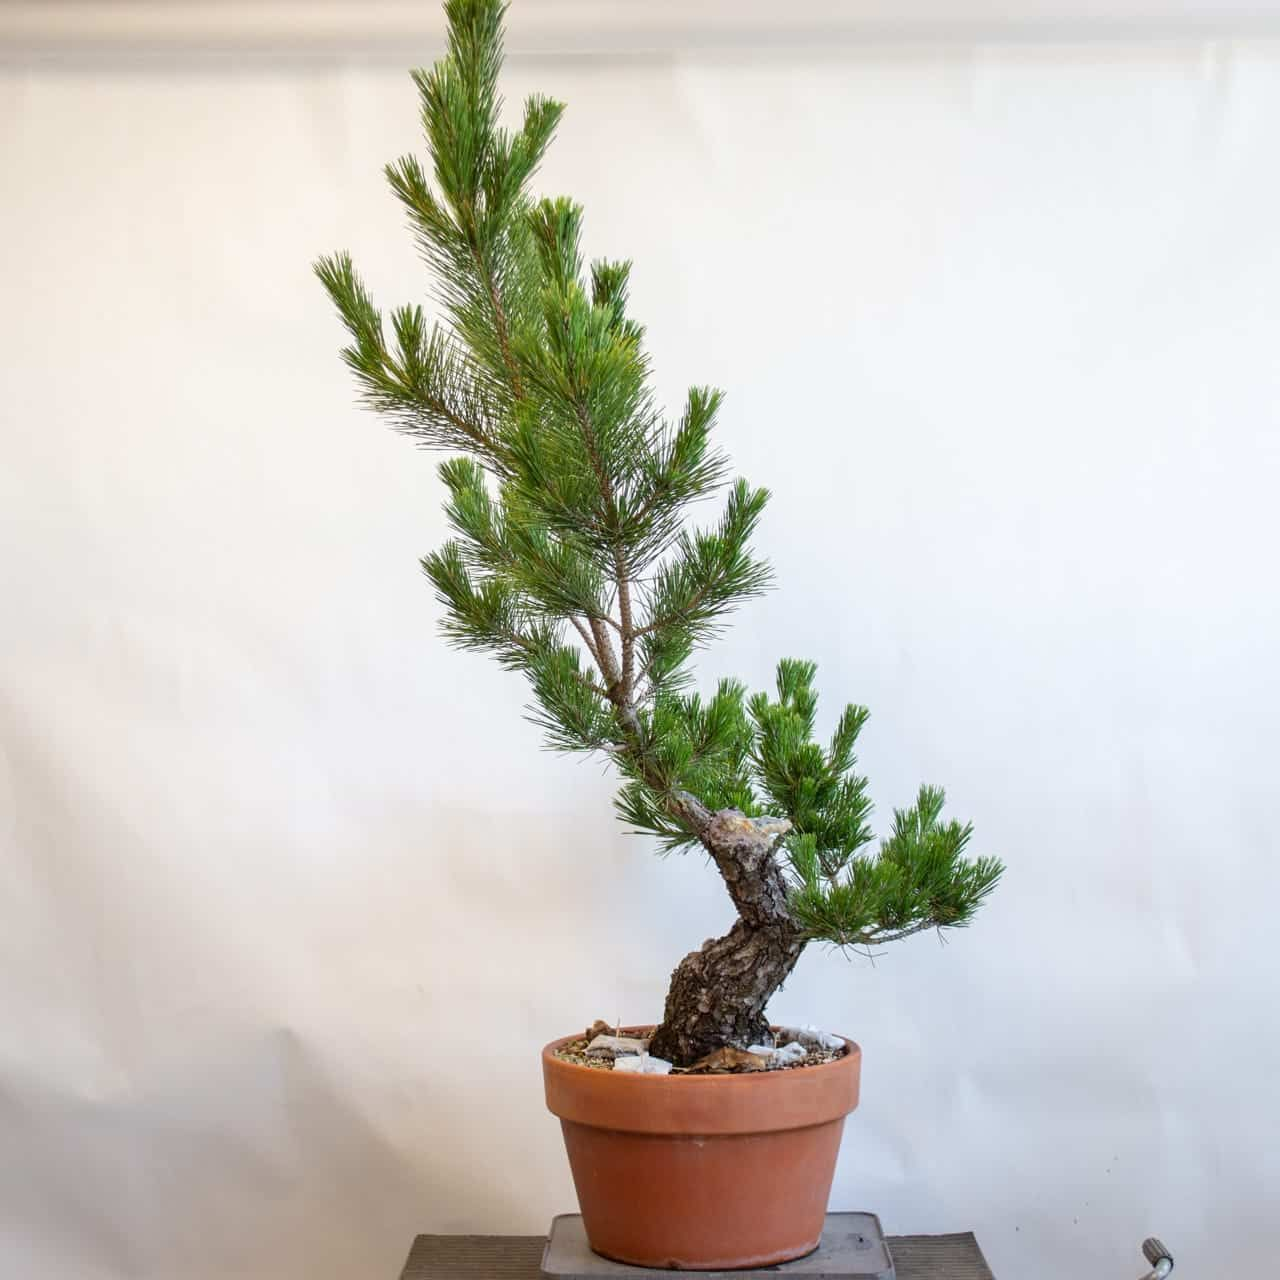 Pin On Bonsai Techniques